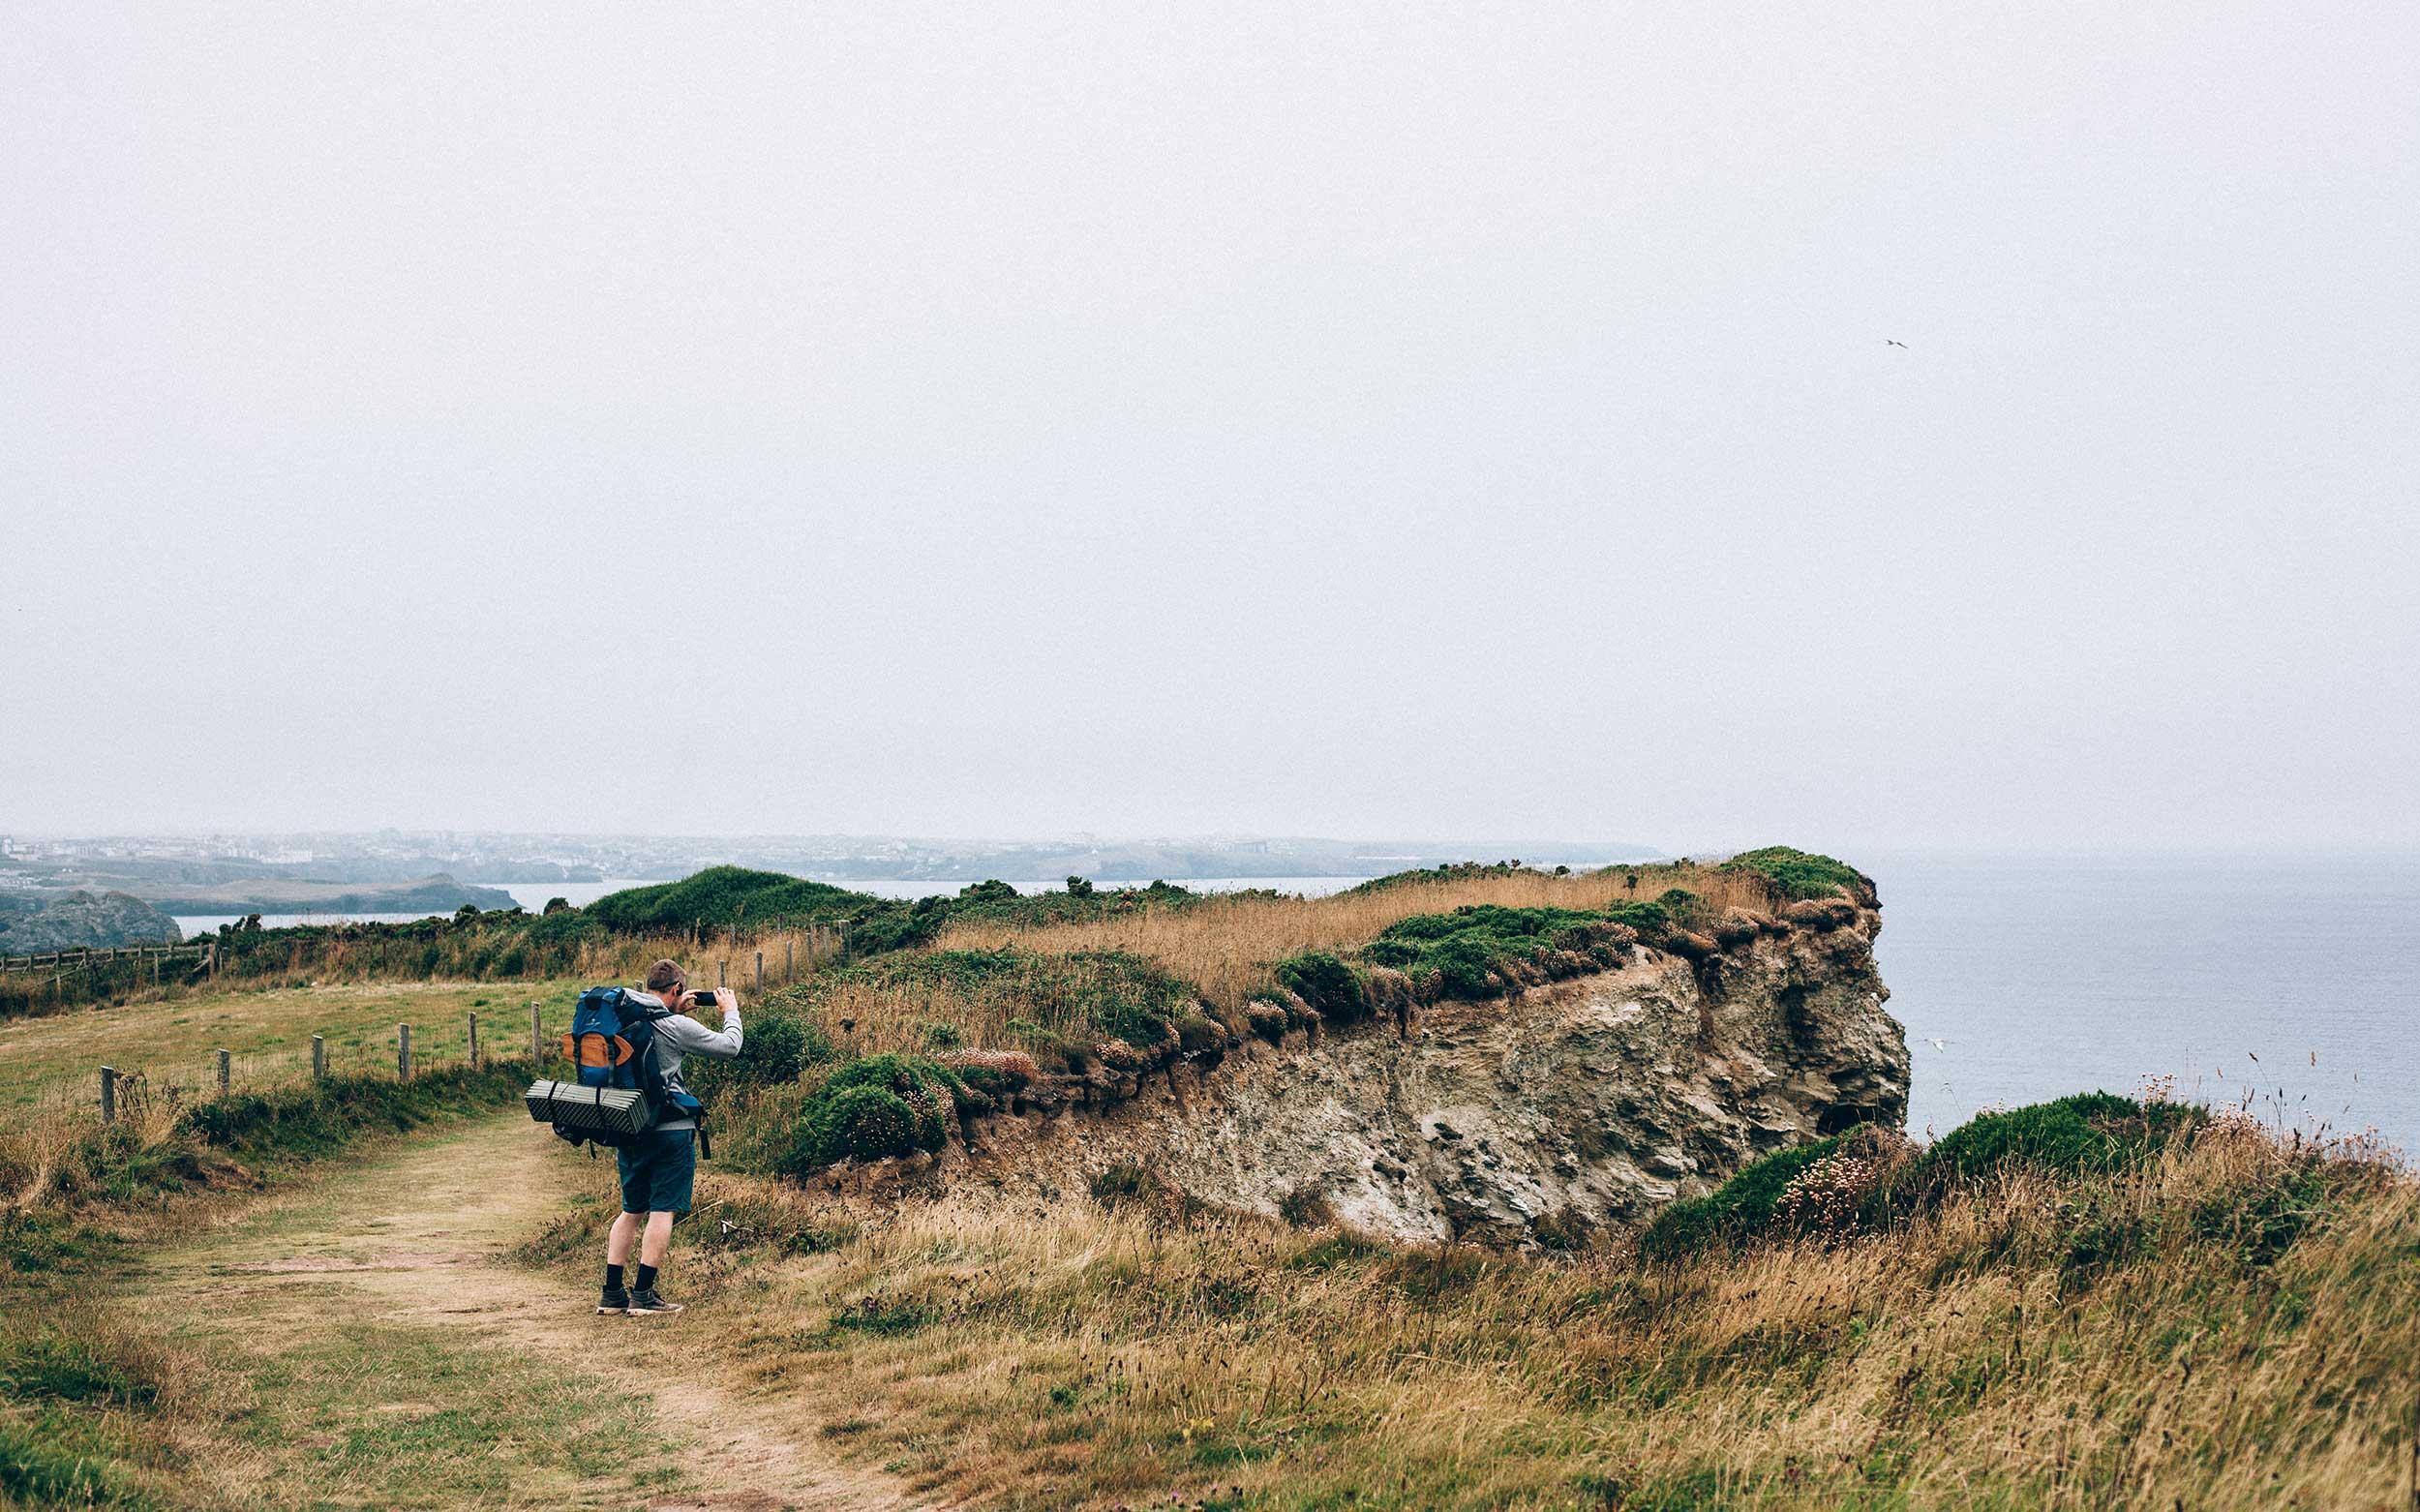 Solo+Camping+in+Cornwall+_+With+Heimplanet+_+Karl+Mackie+Photography (3).jpeg